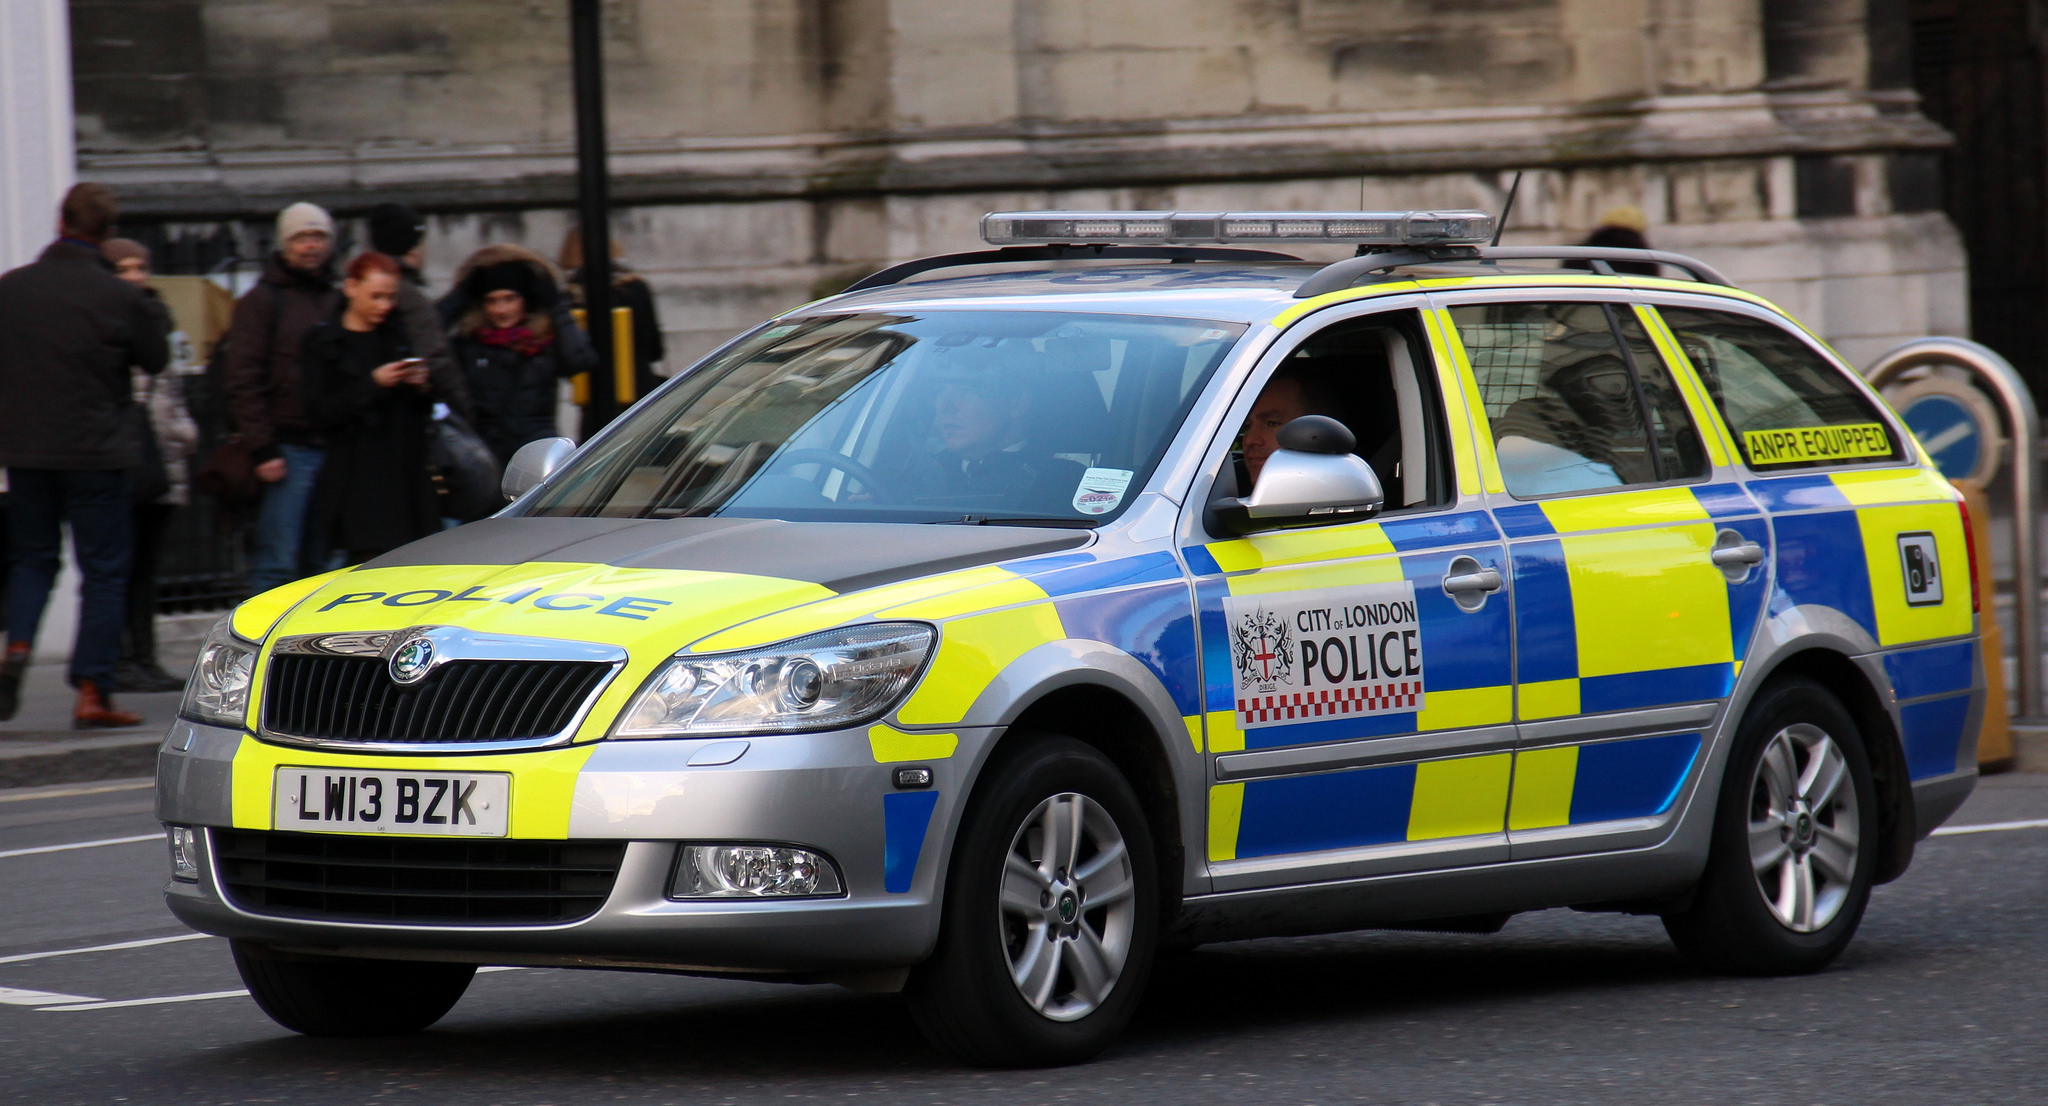 Russian companies win judicial review claim against the City of London Police